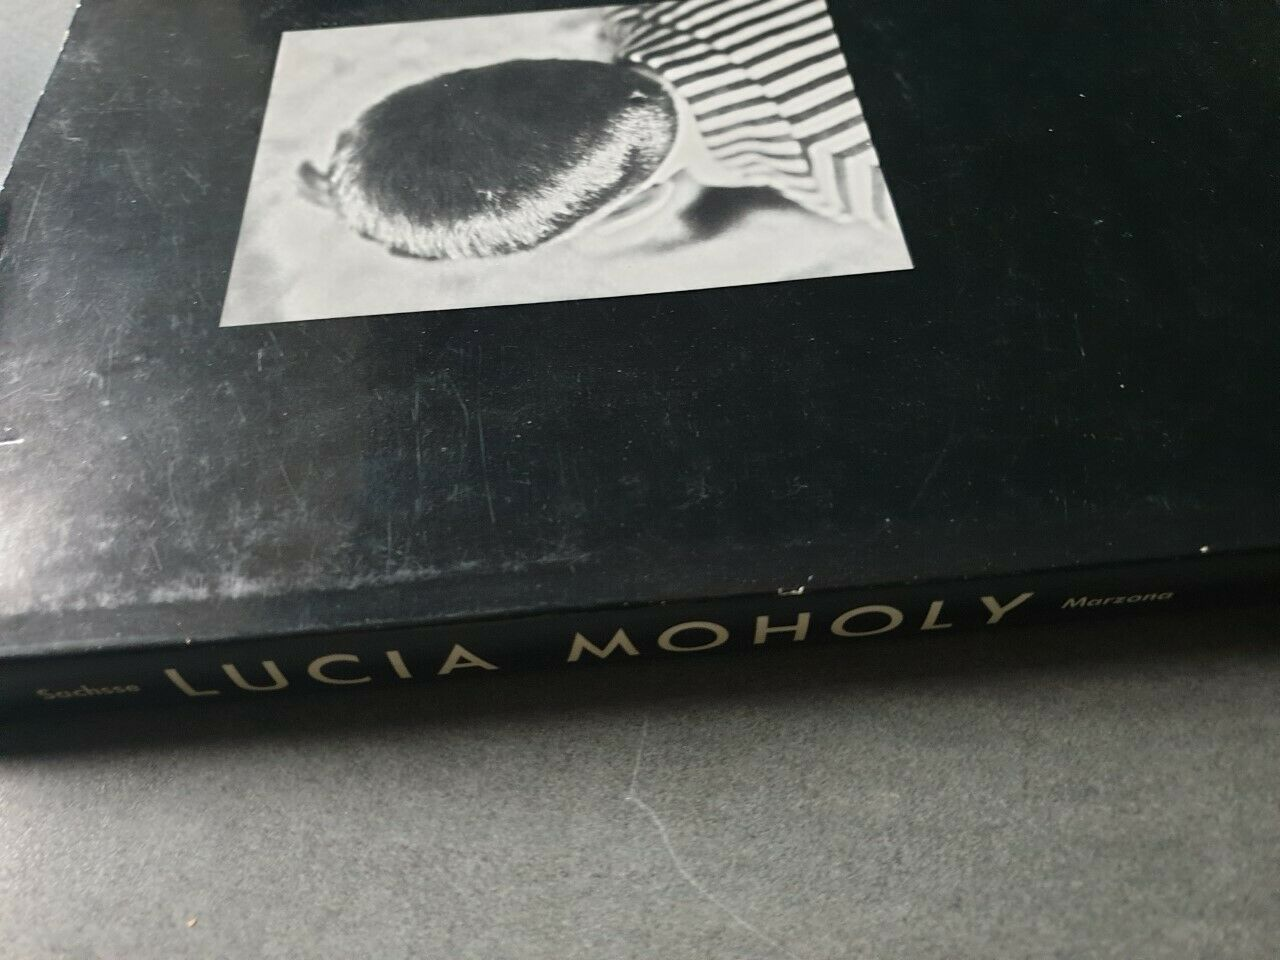 LUCIA MOHOLY Rolf Sachsse Edition Marzona 1985 - Rolf Sachsse